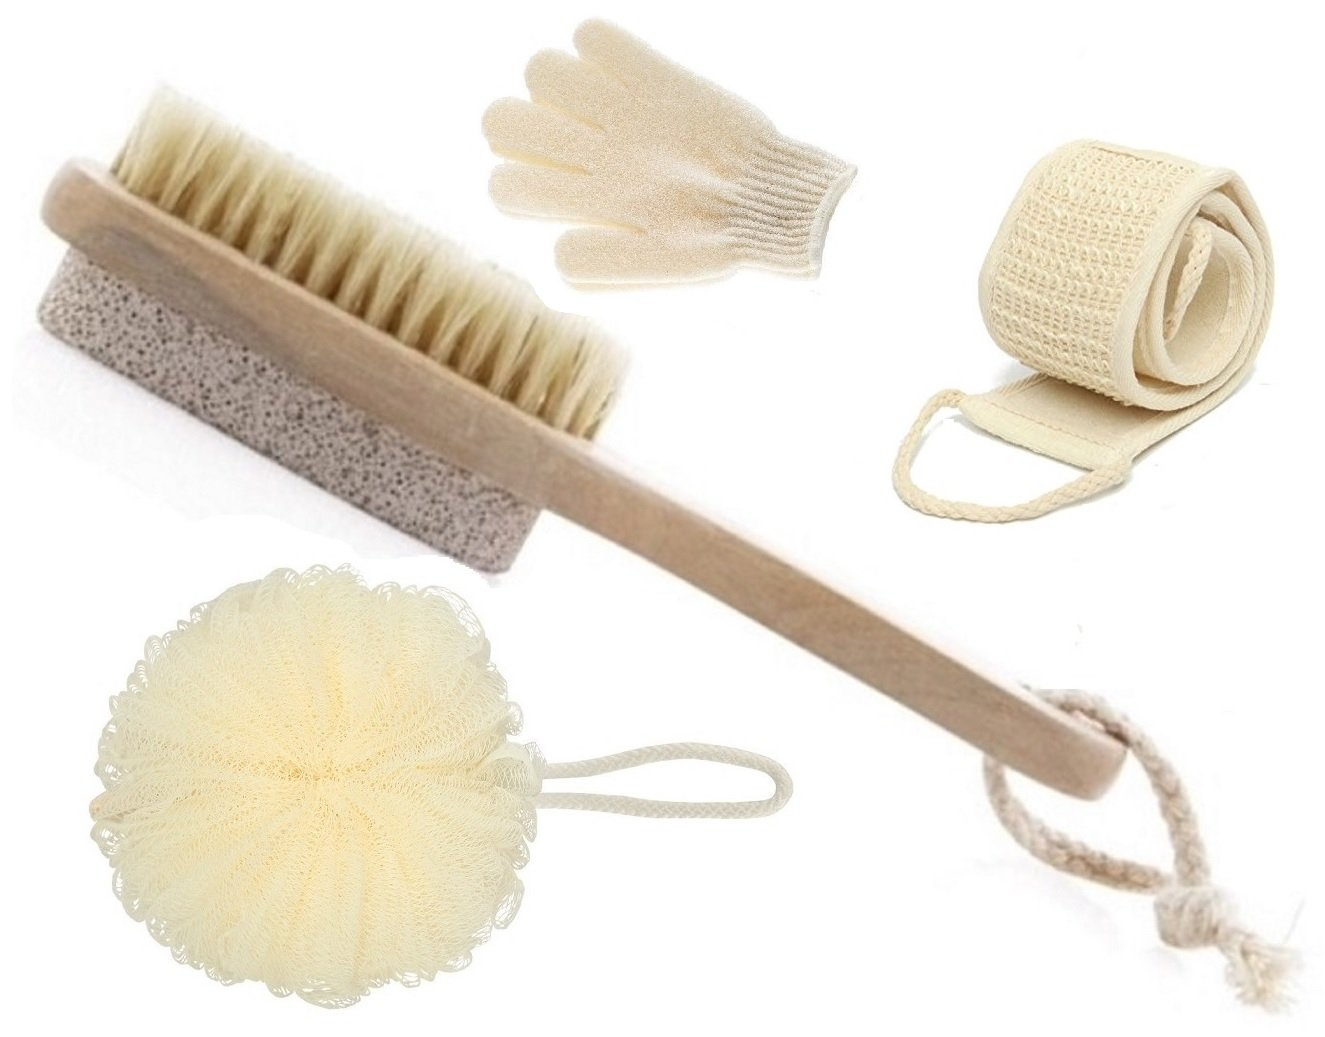 OLIVIA & AIDEN Bath Brush Set - Includes Bath Brush and Pumice Stone Loofah Back Scrubber Exfoliating Bath Gloves and Bath Pouf - The Ultimate Home Spa Set B074F5DVND